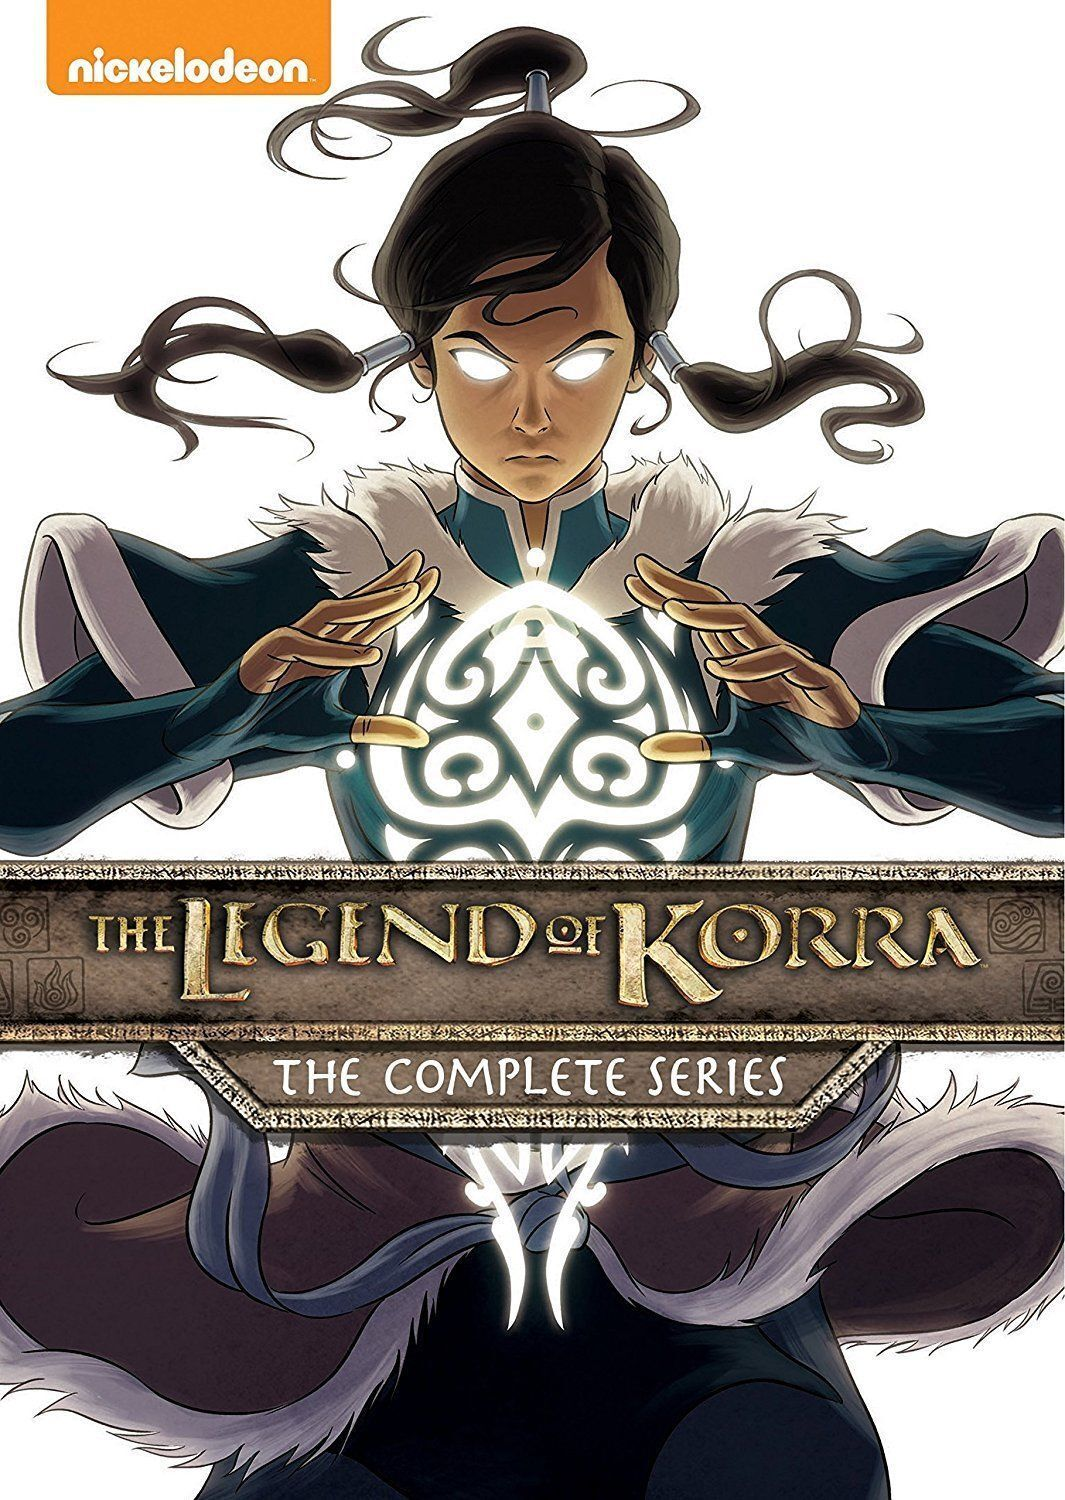 The Legend of Korra:Complete Series DVD Book 1 2 3 4 FREE 2-3 EXPEDITED SHIPPING